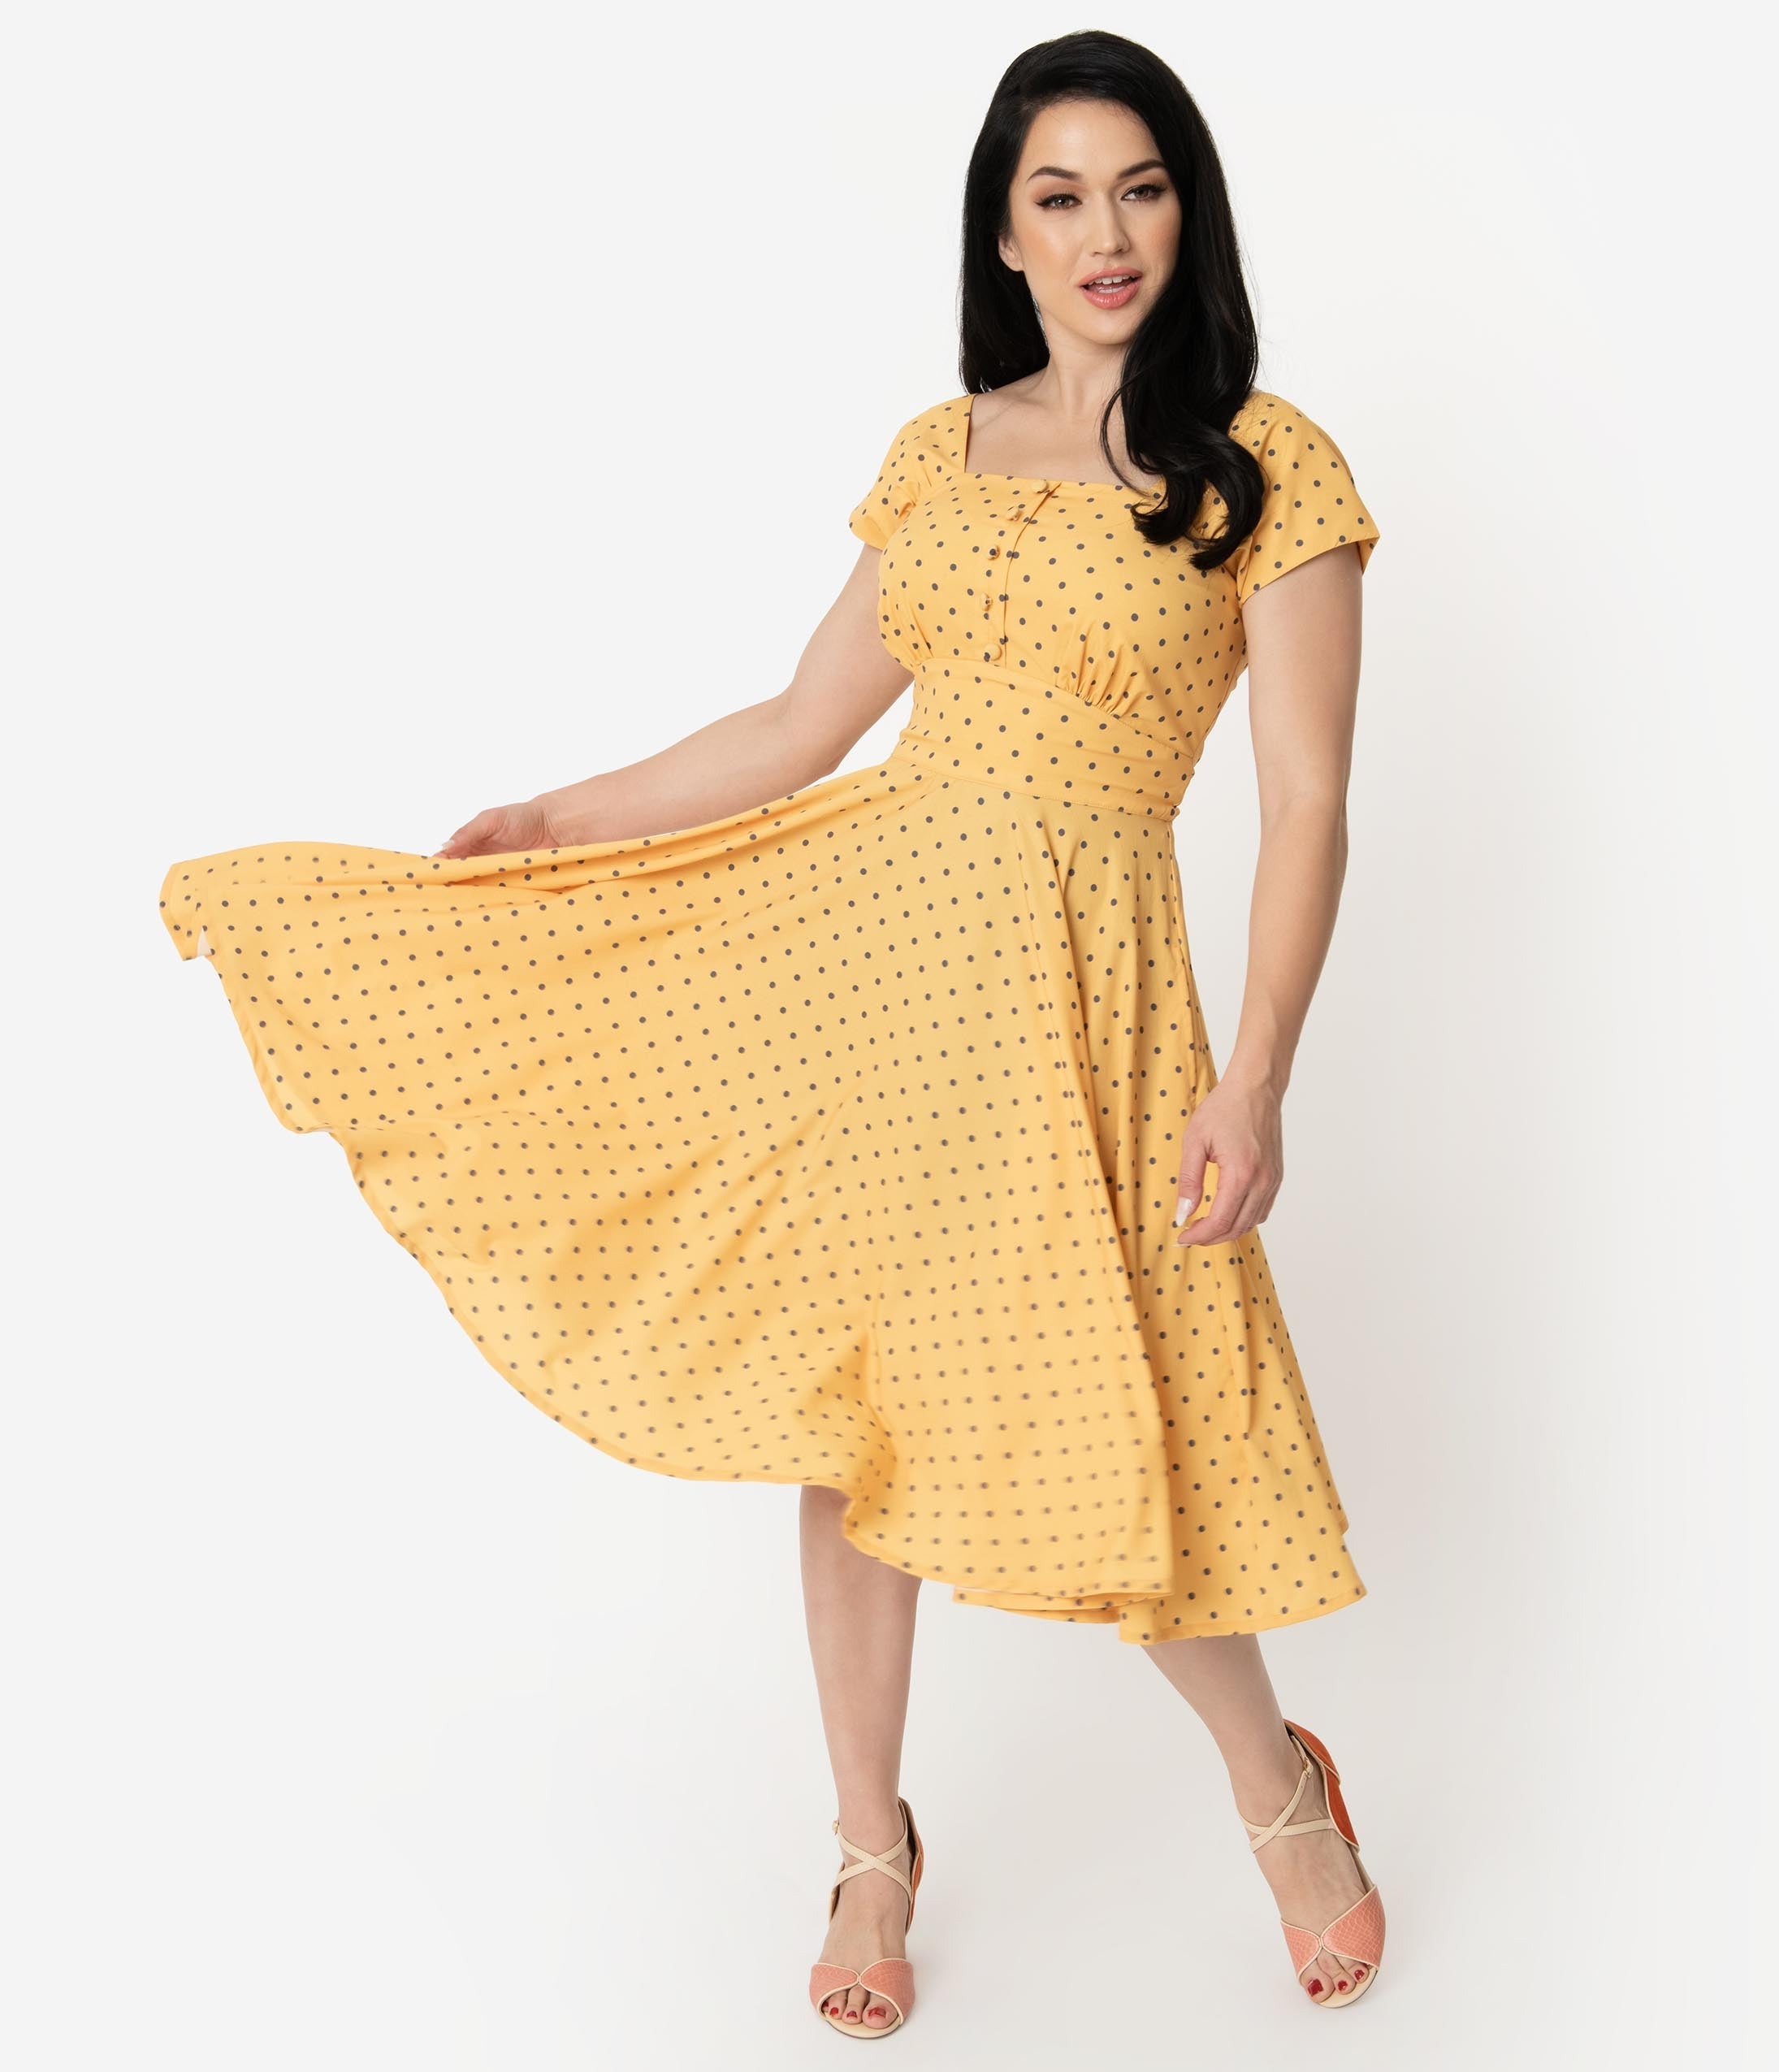 Vintage Tea Dresses, Floral Tea Dresses, Tea Length Dresses 1940S Style Yellow  Grey Polka Dot Cap Sleeve Zafira Swing Dress $72.00 AT vintagedancer.com